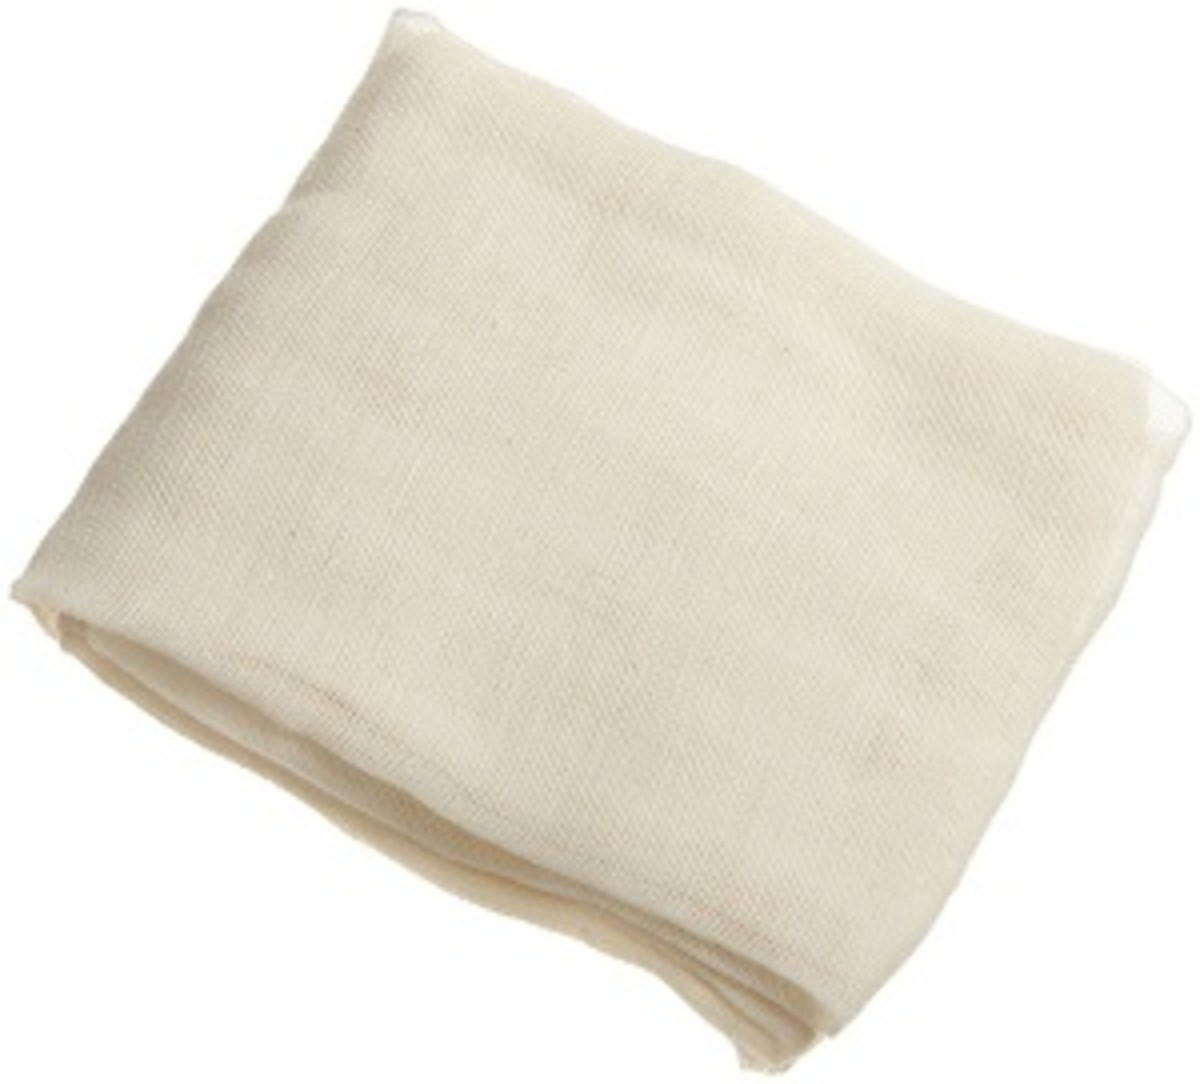 Cotton Cheesecloth